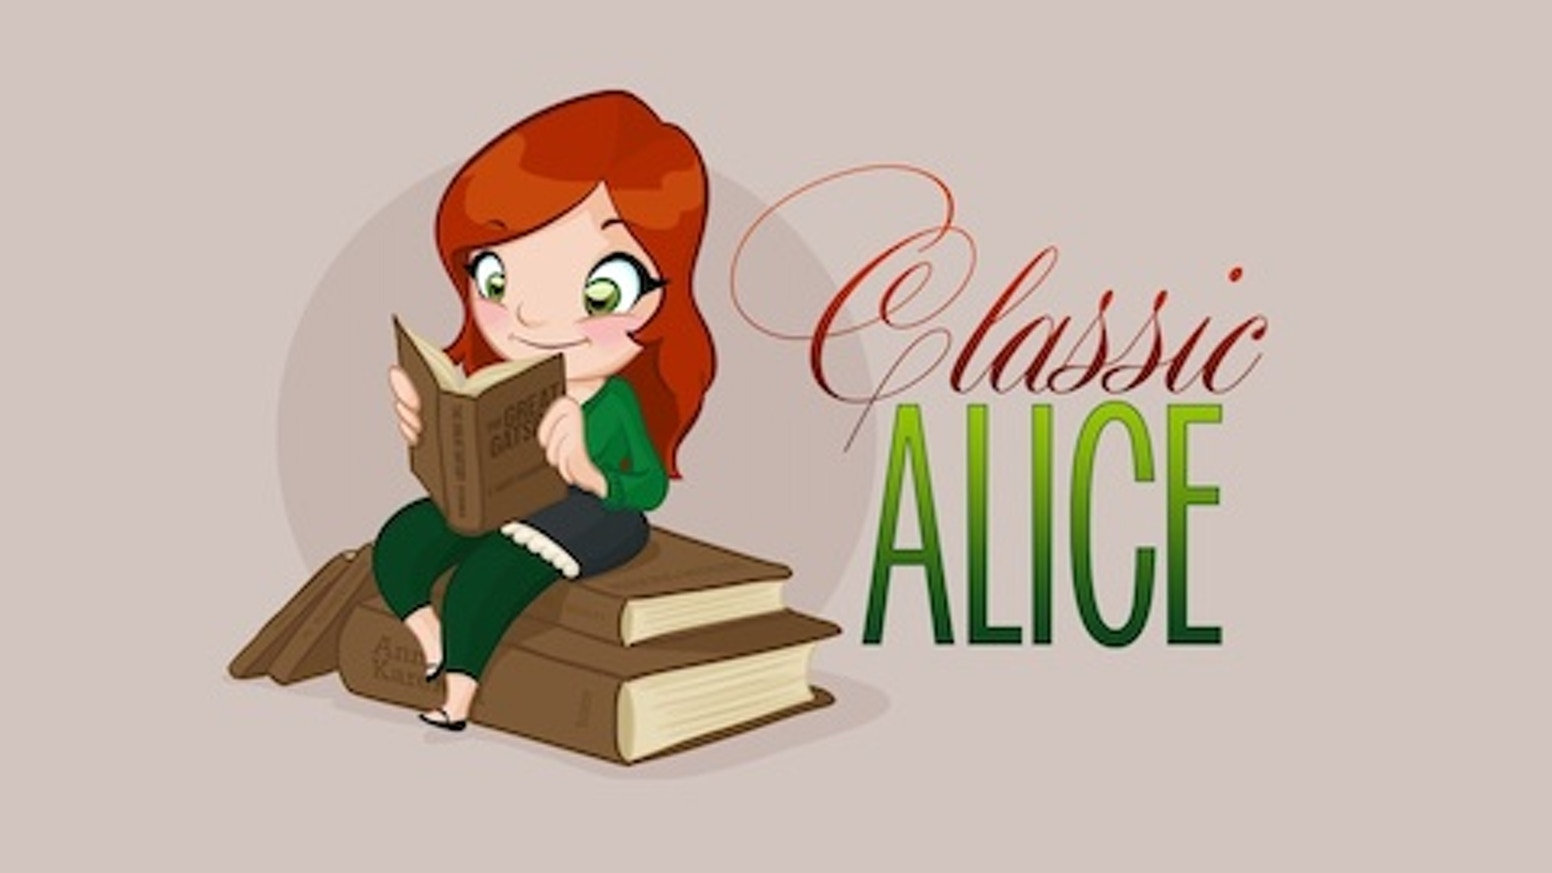 Living Life One Book at a Time! When Alice gets a bad grade on a test, she pairs with Andrew to live life according to classic novels!